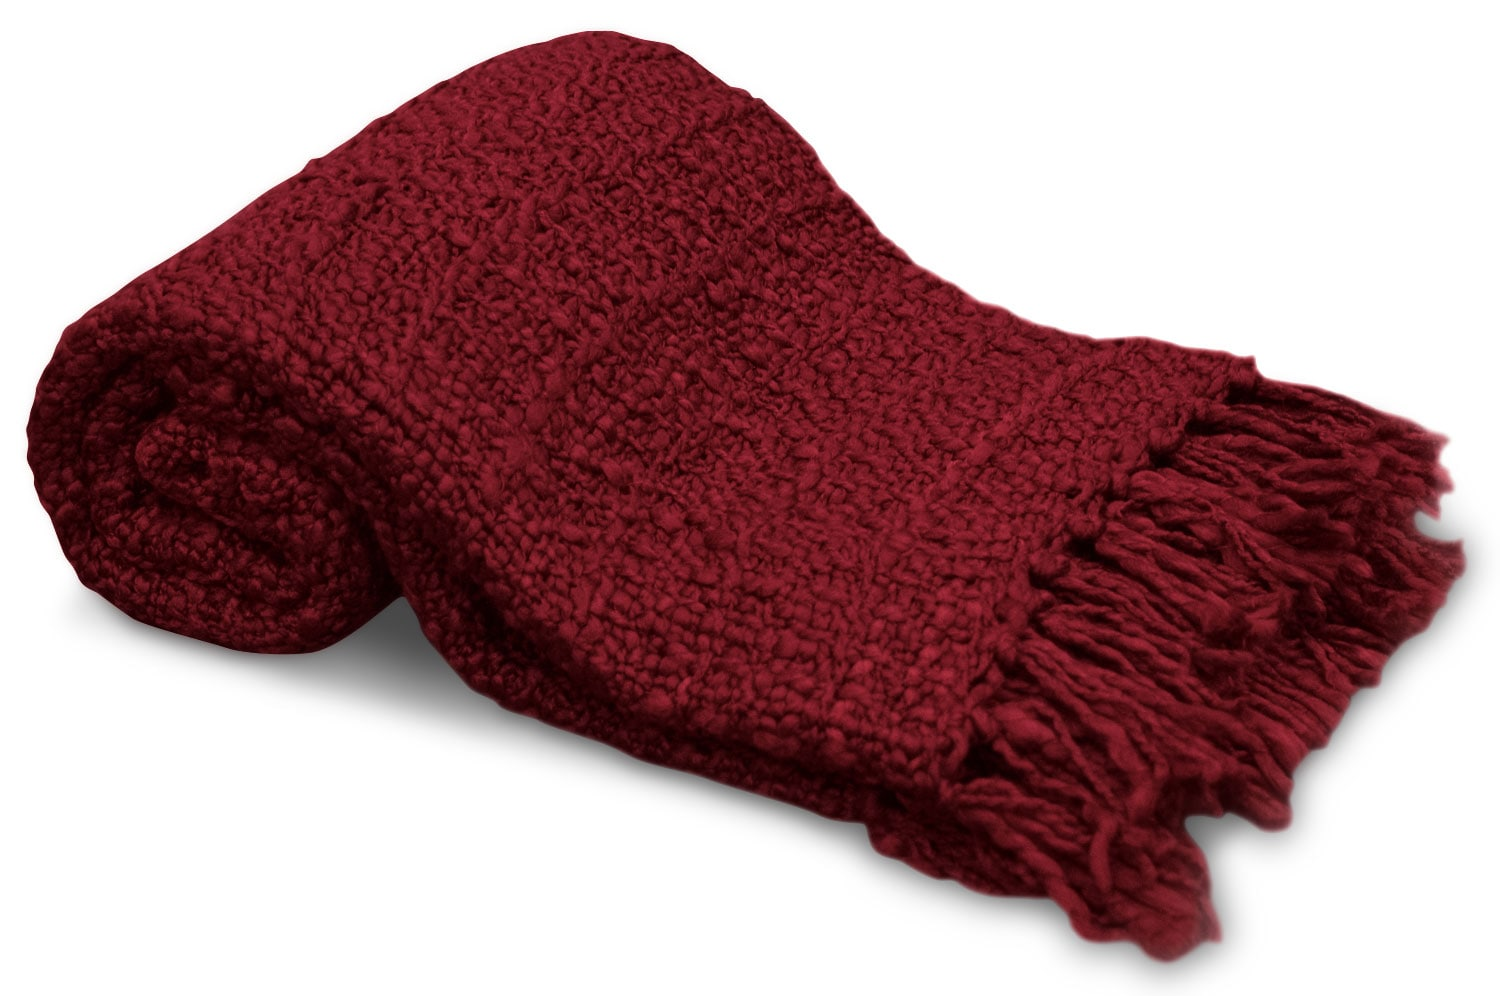 Knit Throw with Fringe – Red